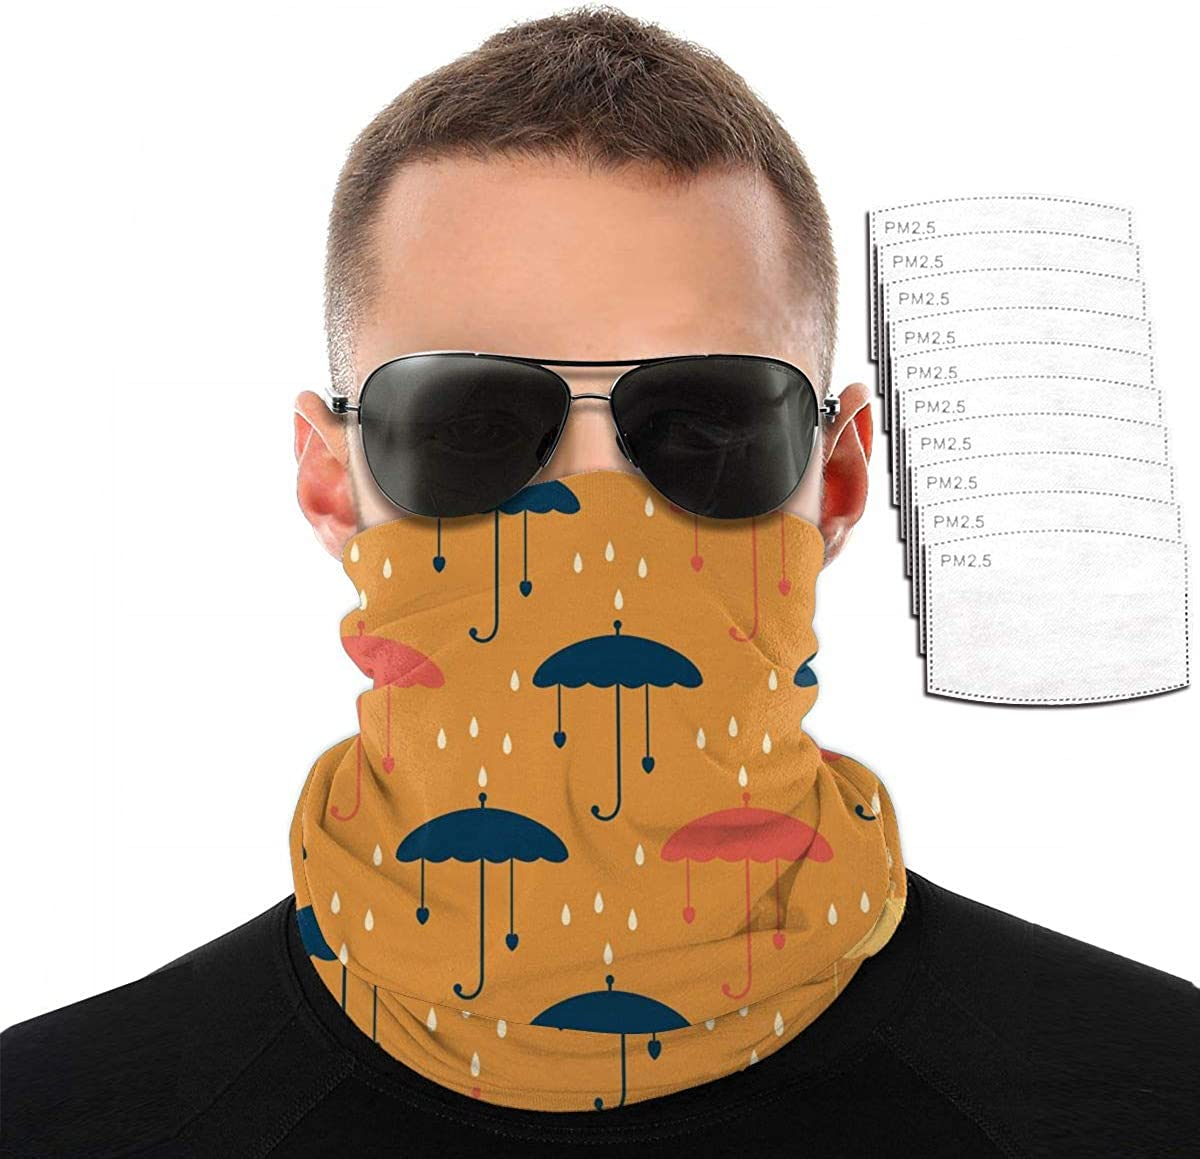 Face Mask Raindrops and Umbrellas Mouth Cover Shield Bandana Balaclava Neck Gaiter Tube Face Scarf with Filters Pieces